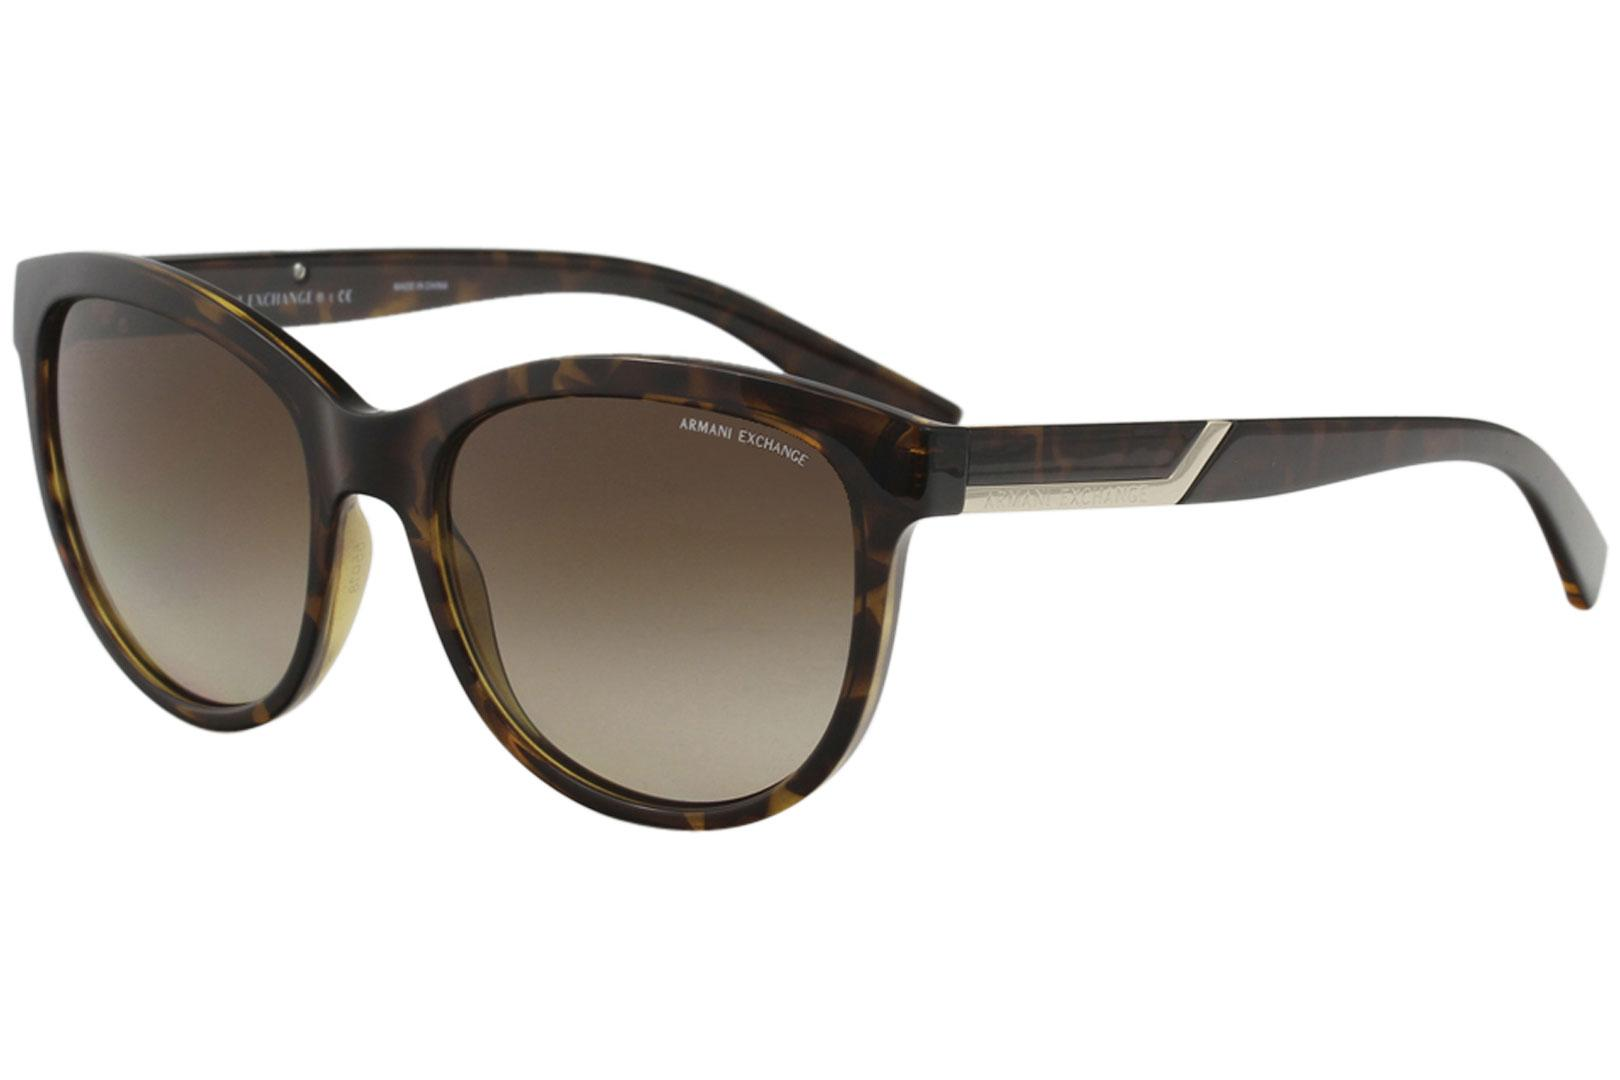 Image of Armani Exchange Women's AX4051S AX/4051/S Fashion Oval Sunglasses - Brown - Lens 55 Bridge 18 Vertical Height 47.4 Effective D